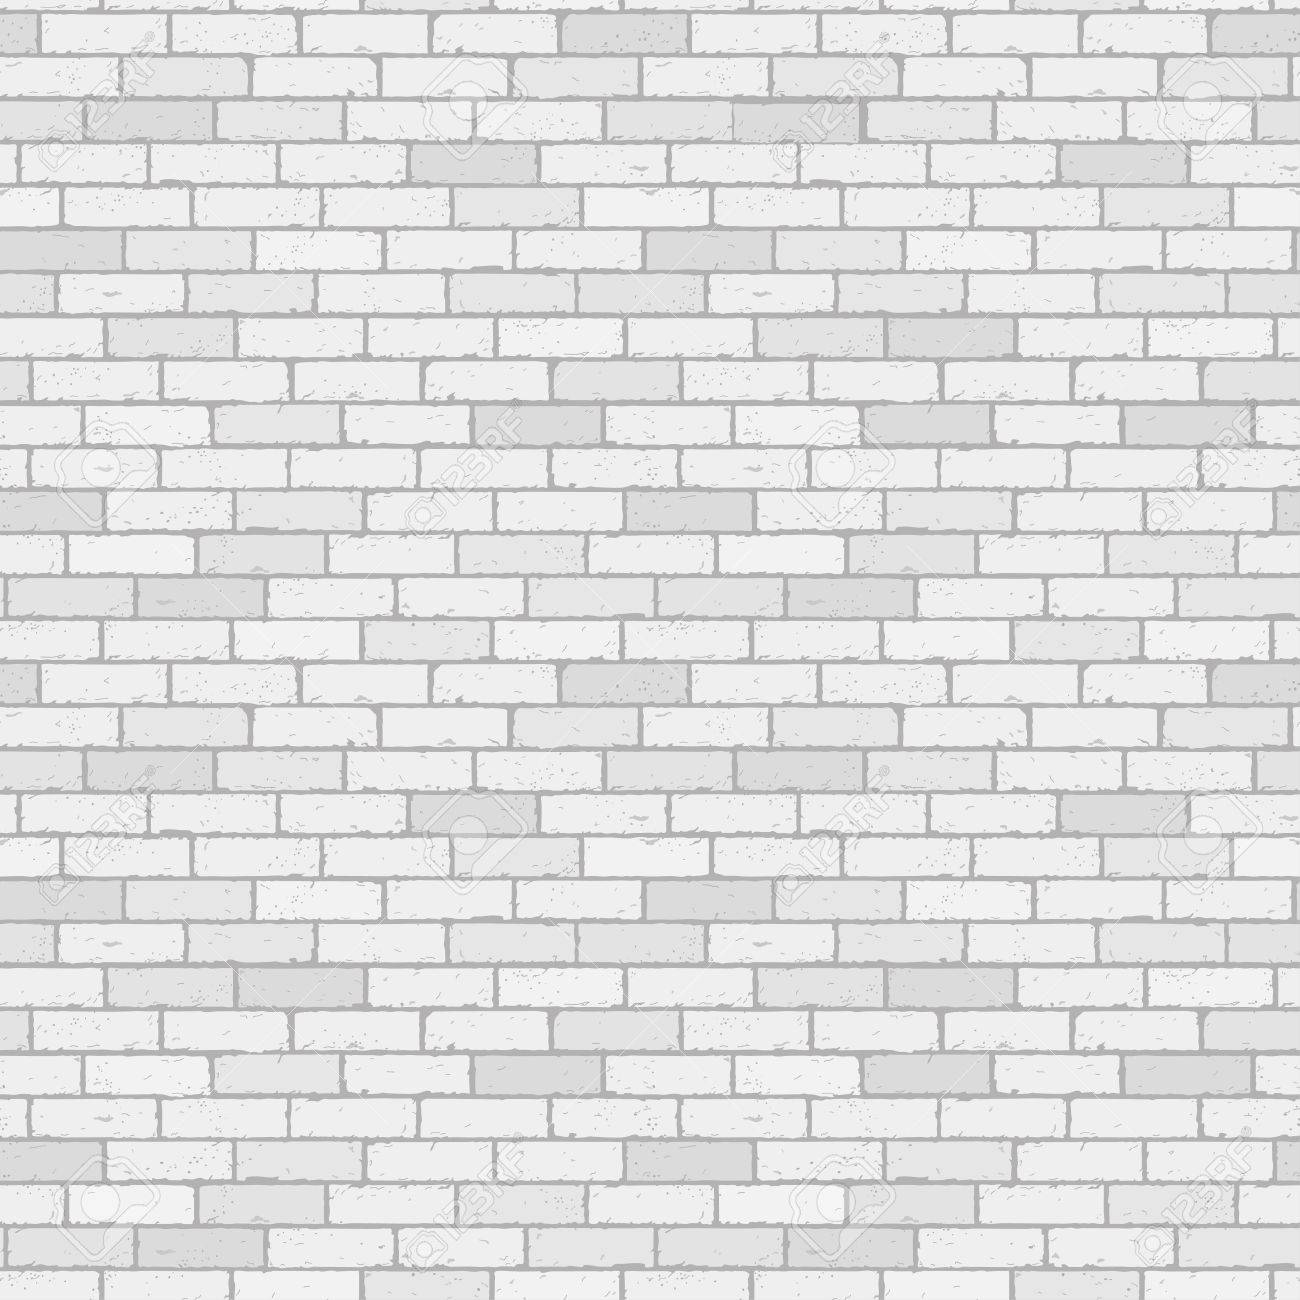 White And Gray Wall Brick Background Rustic Blocks Texture Template